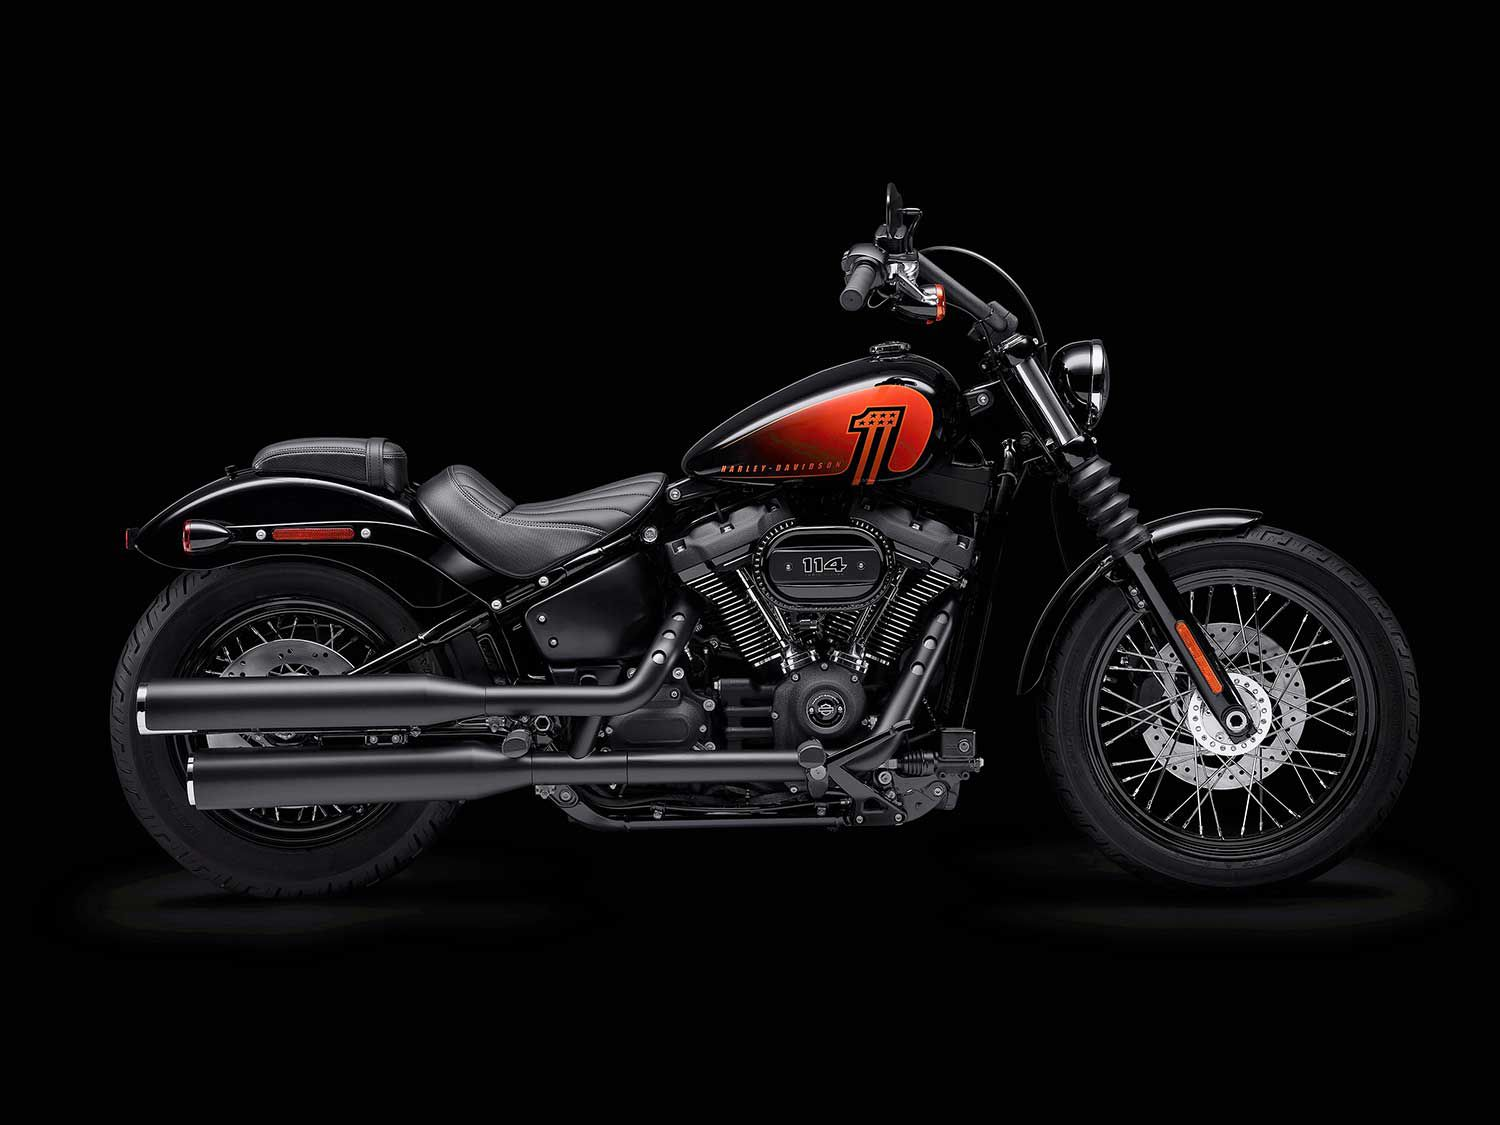 H-D slotted in the Street Bob 114 as a new model for 2021, and cut a few of its companions from the series to make room.